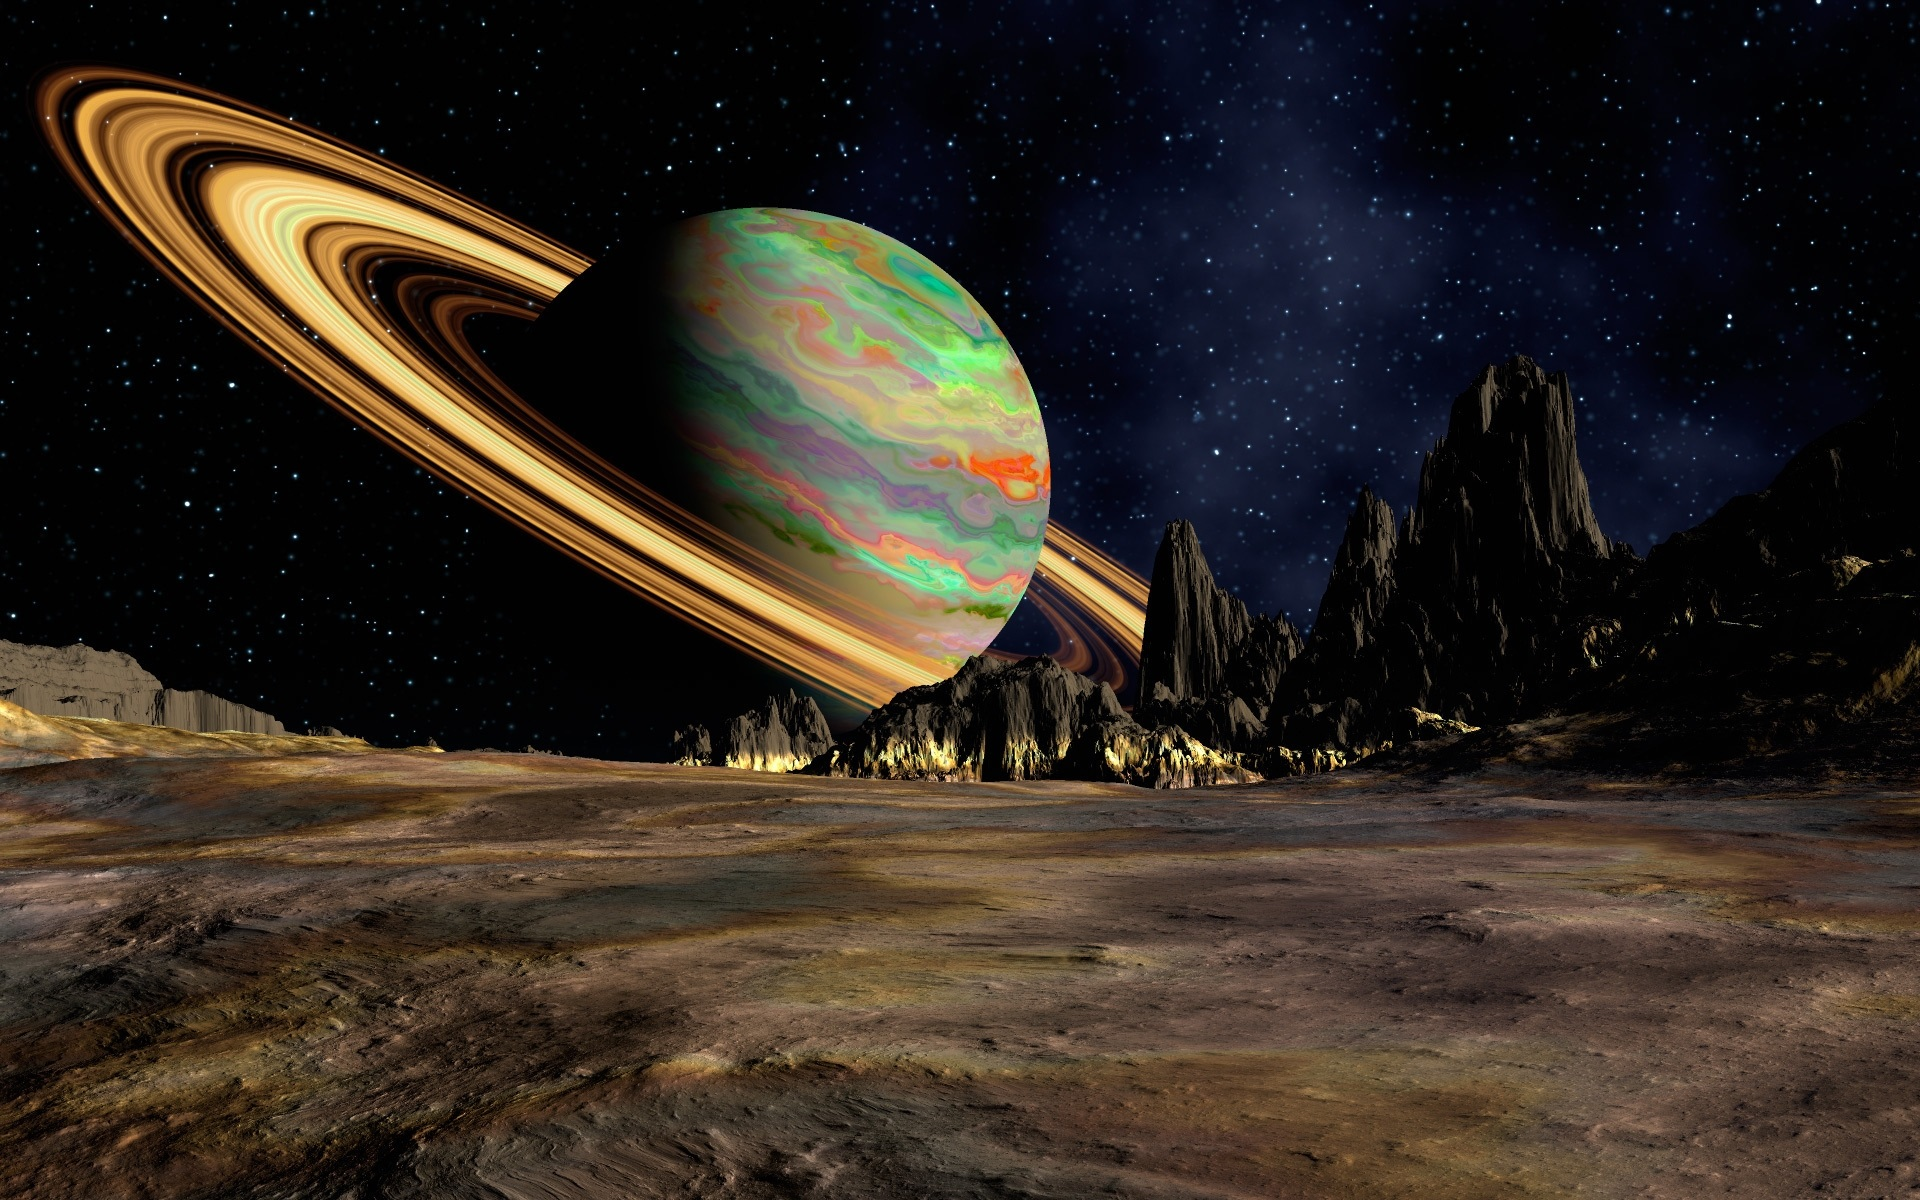 Wallpaper Saturn Ring Planet 1920x1200 Hd Picture Image